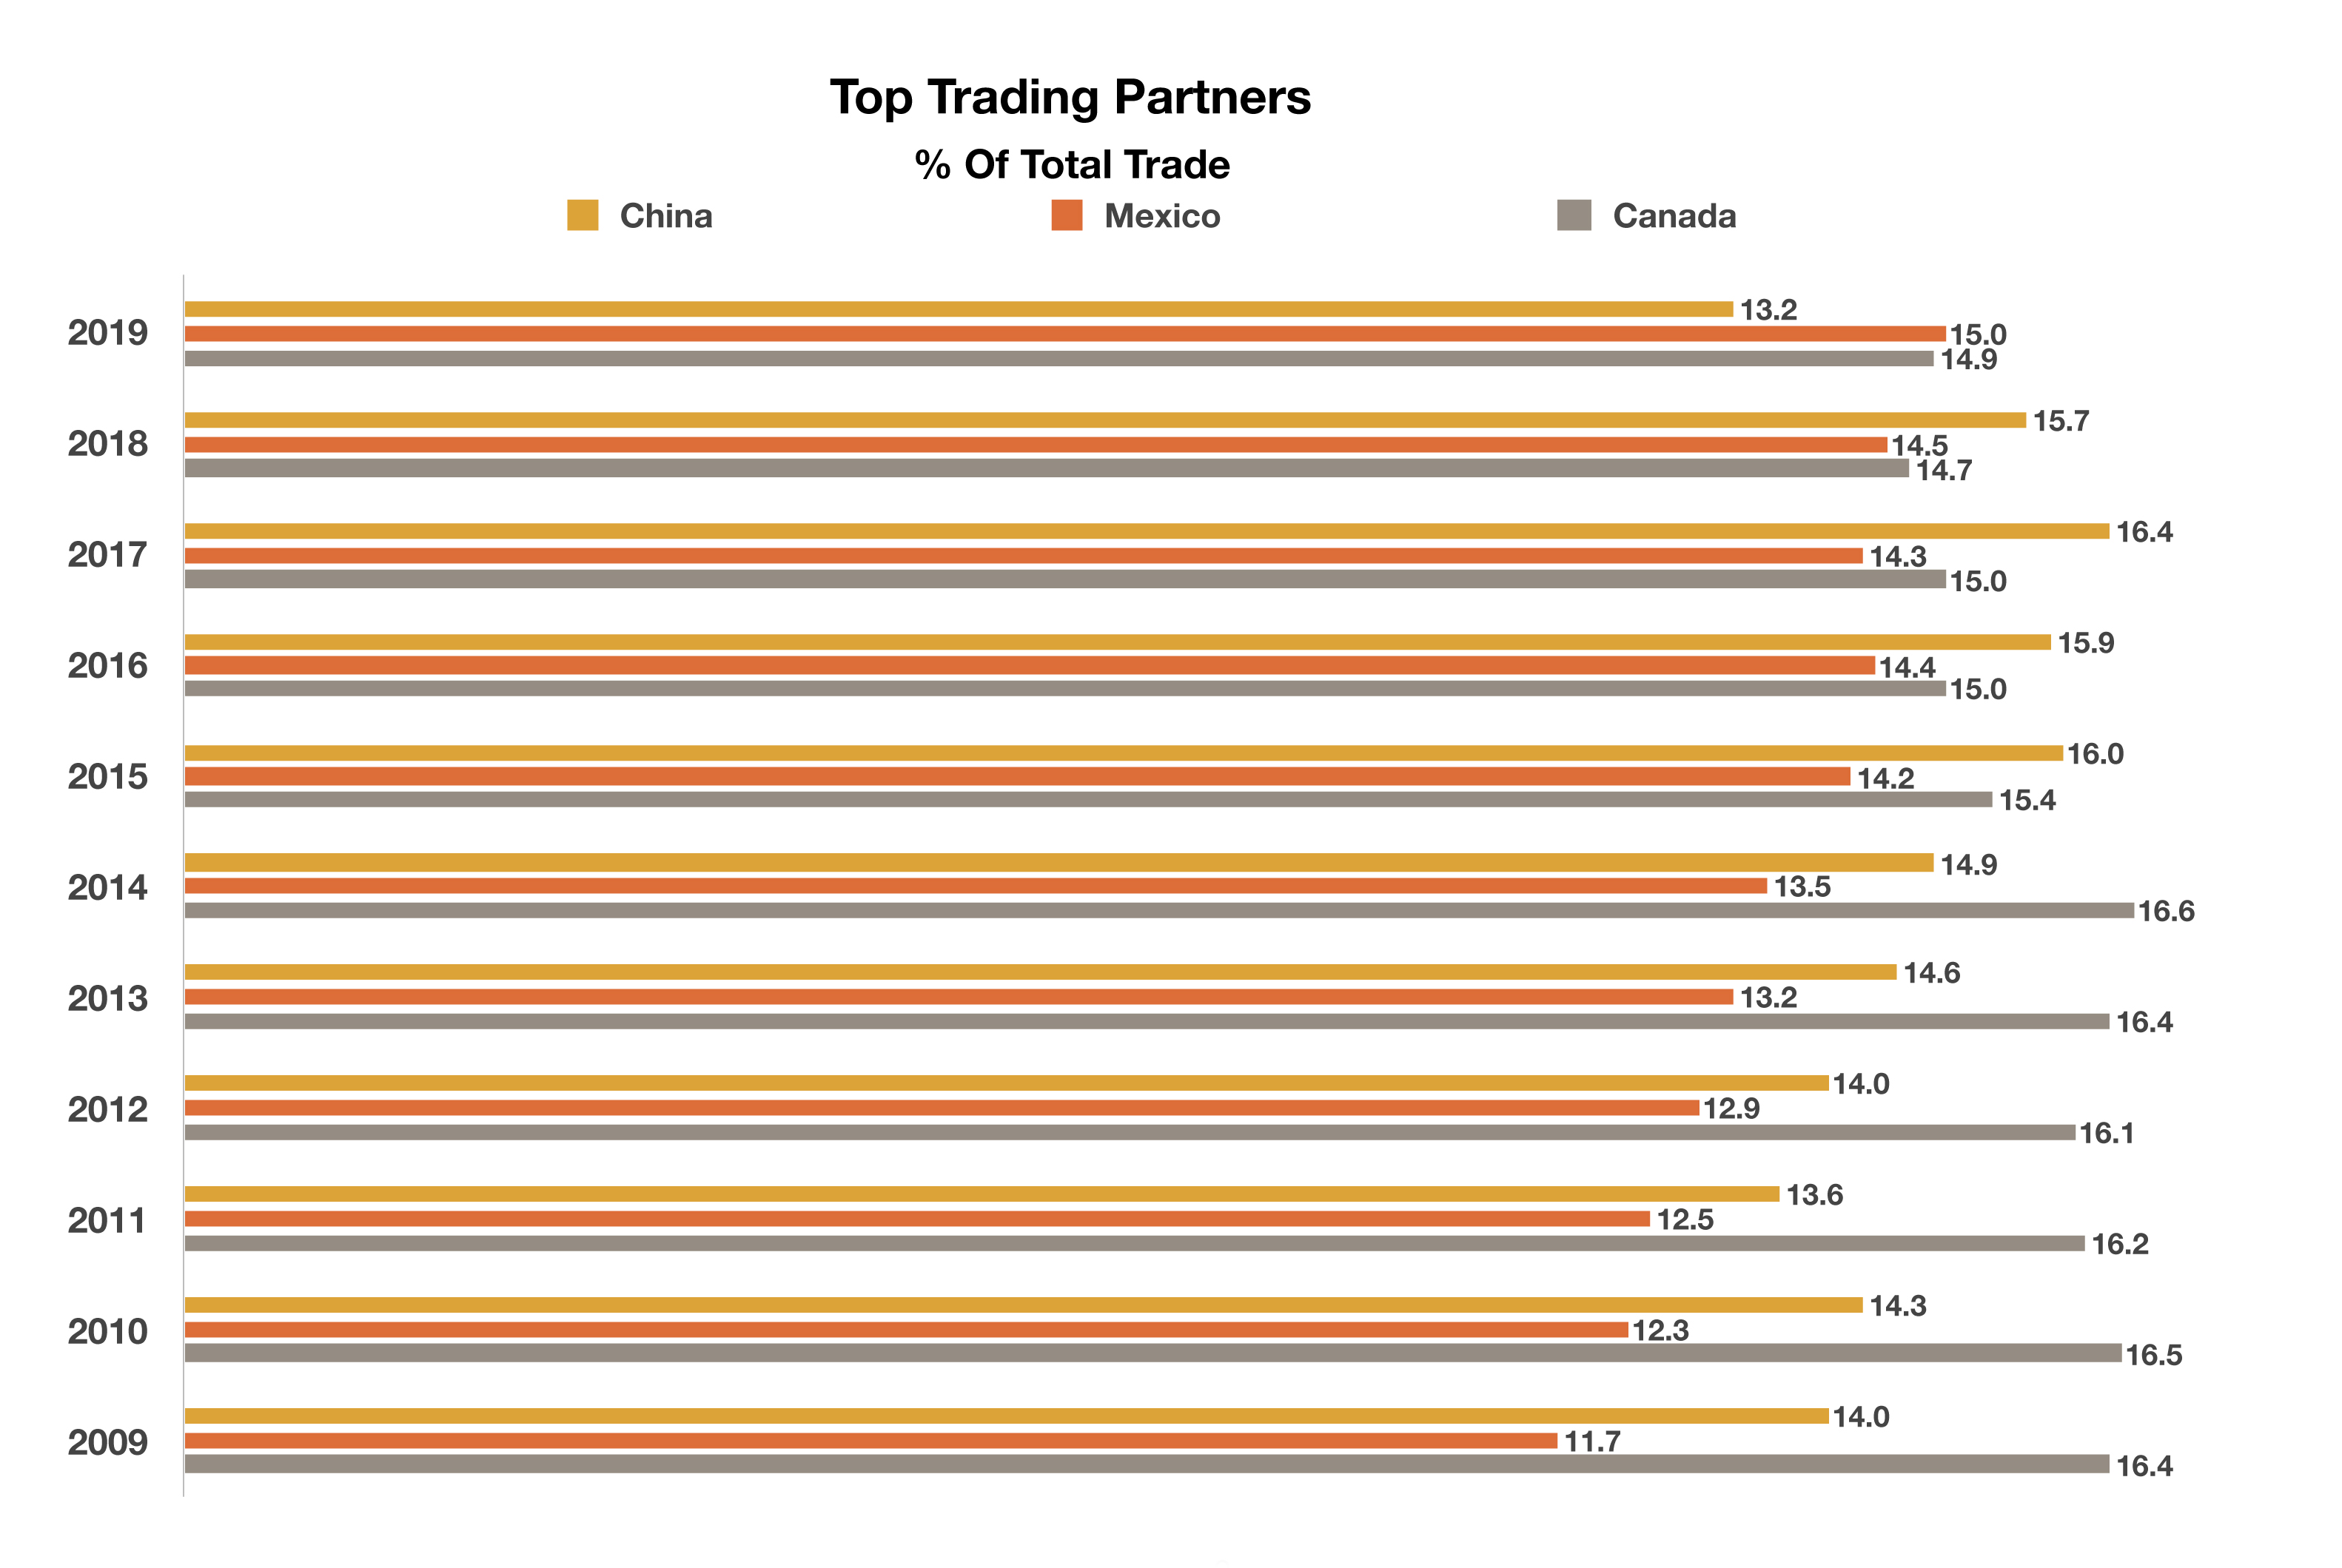 Top Trading Partners